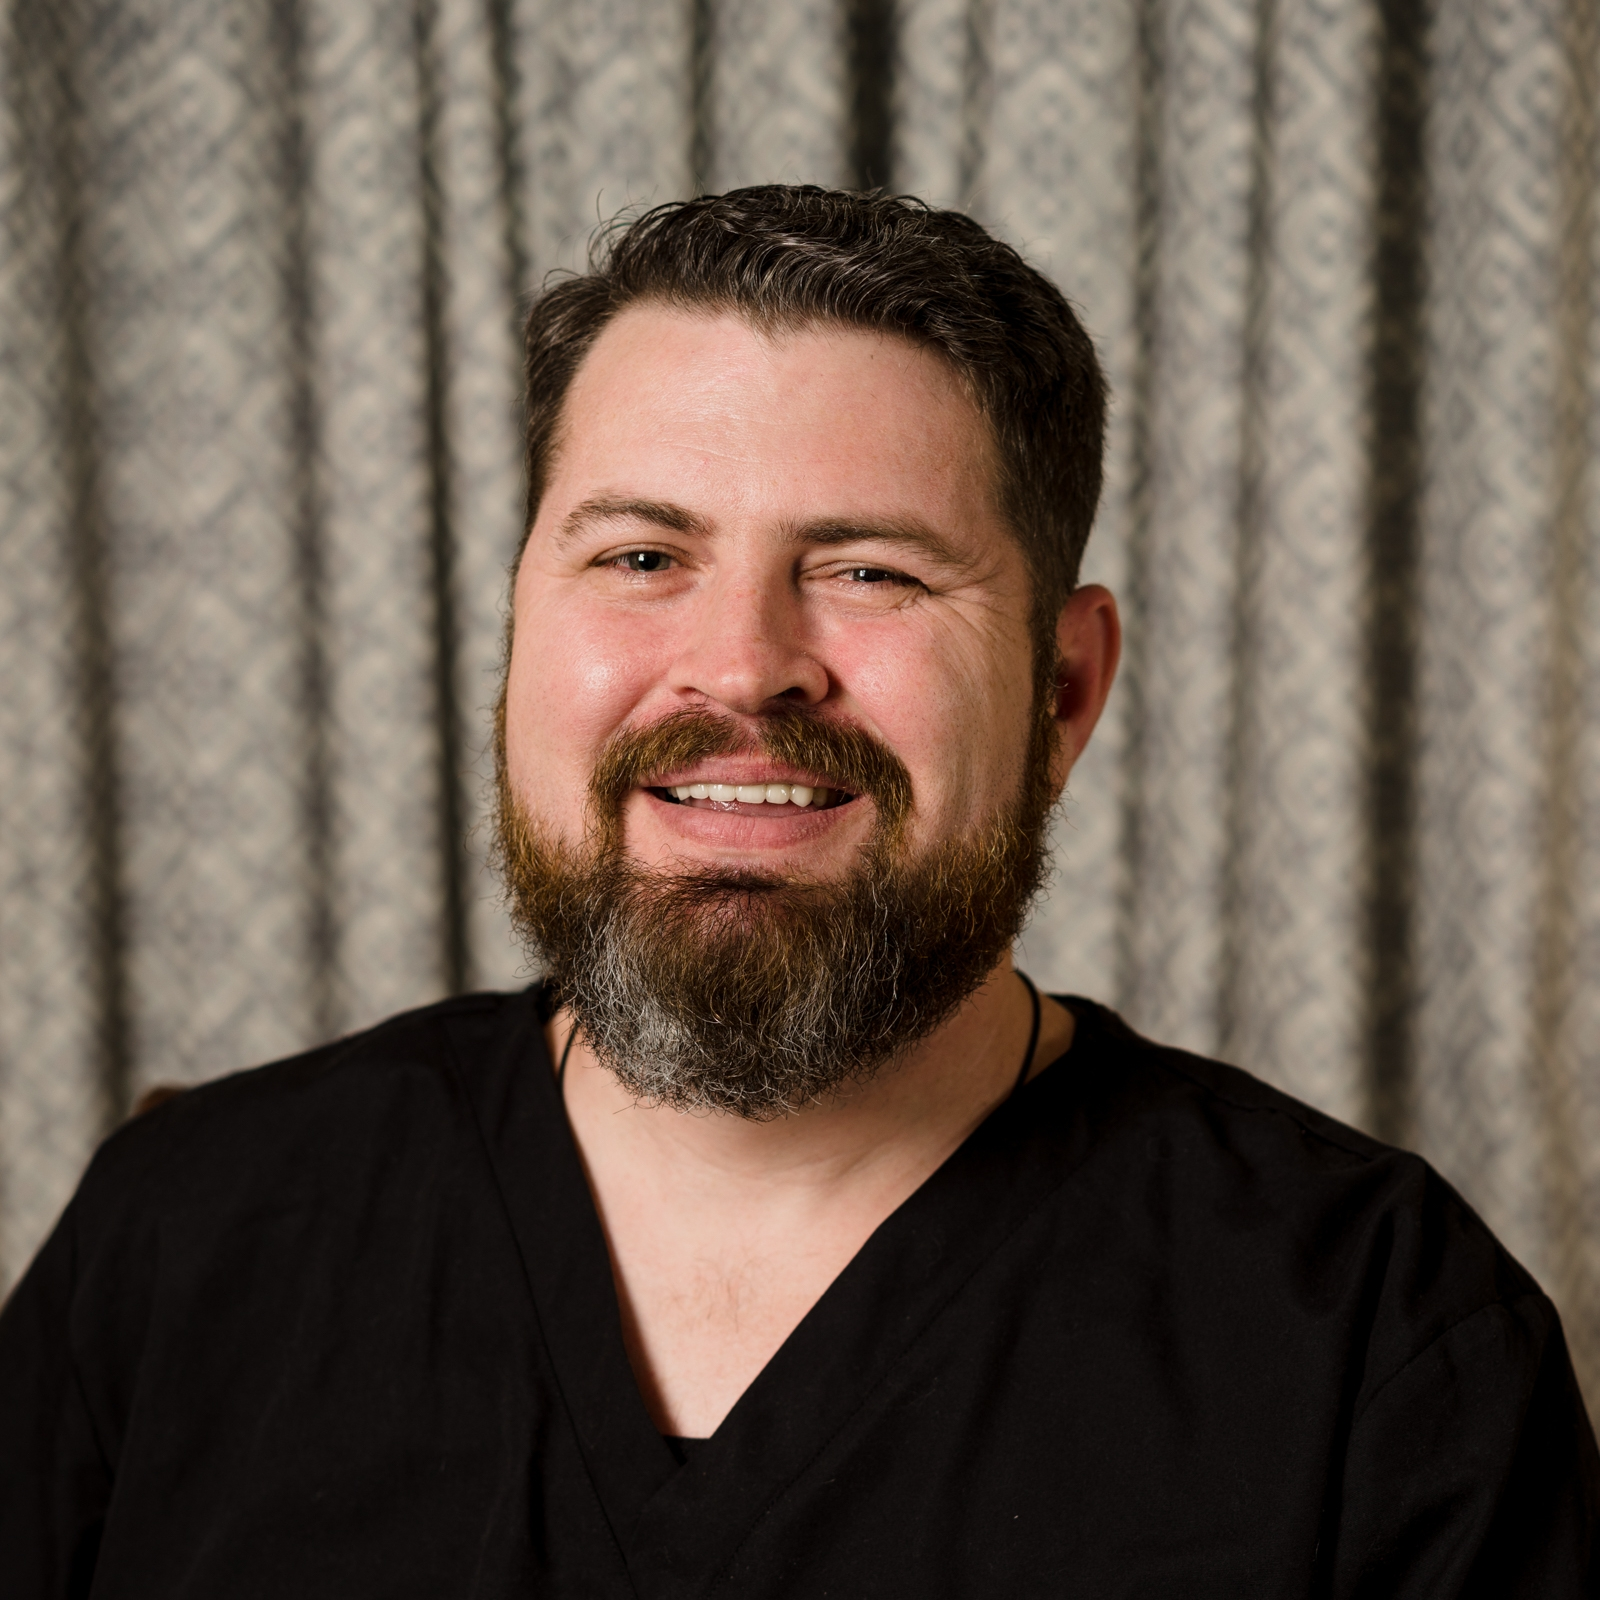 Justin Weirich - LMT/NMT ALABAMA LICENSE #4834Justin Weirich, LMT/NMT is a Licensed Massage Therapist working for BWM. He graduated from Birmingham School of Massage and earned his license in 2017. He enjoys building a therapy relationship with his clients to promote an overall wellness plan.